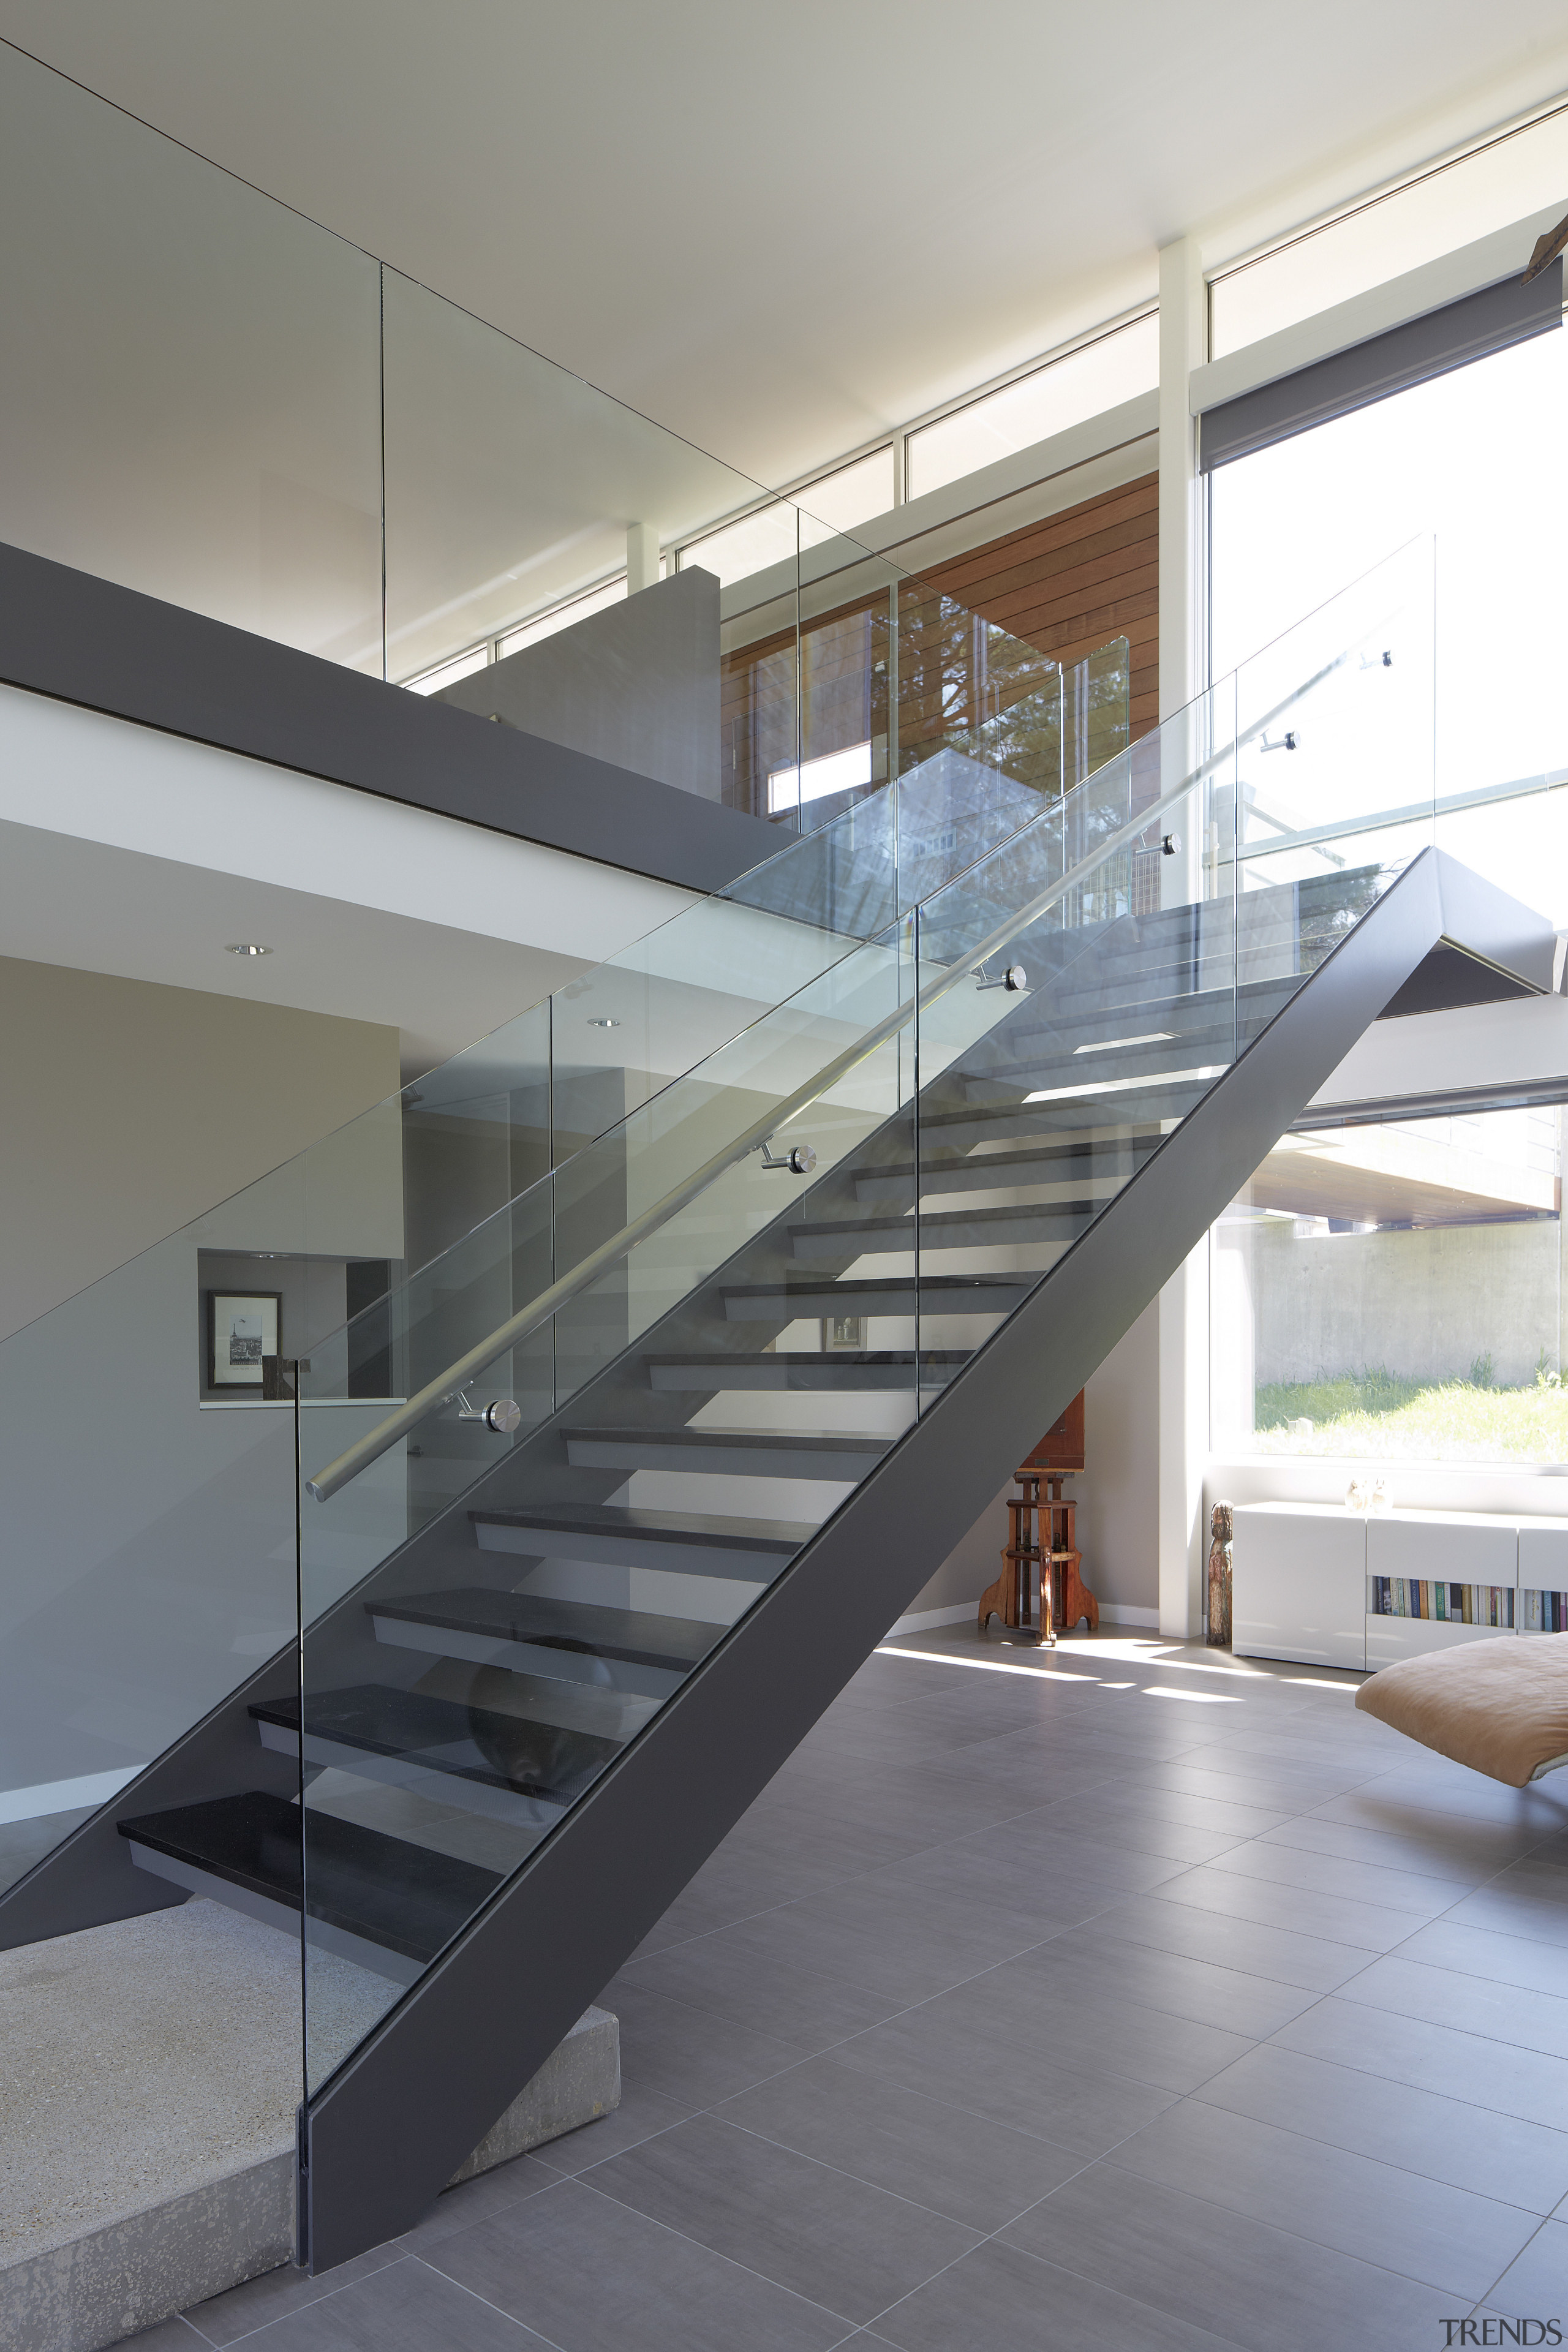 Double height volume in modern riverside home with architecture, daylighting, glass, handrail, house, interior design, stairs, structure, gray